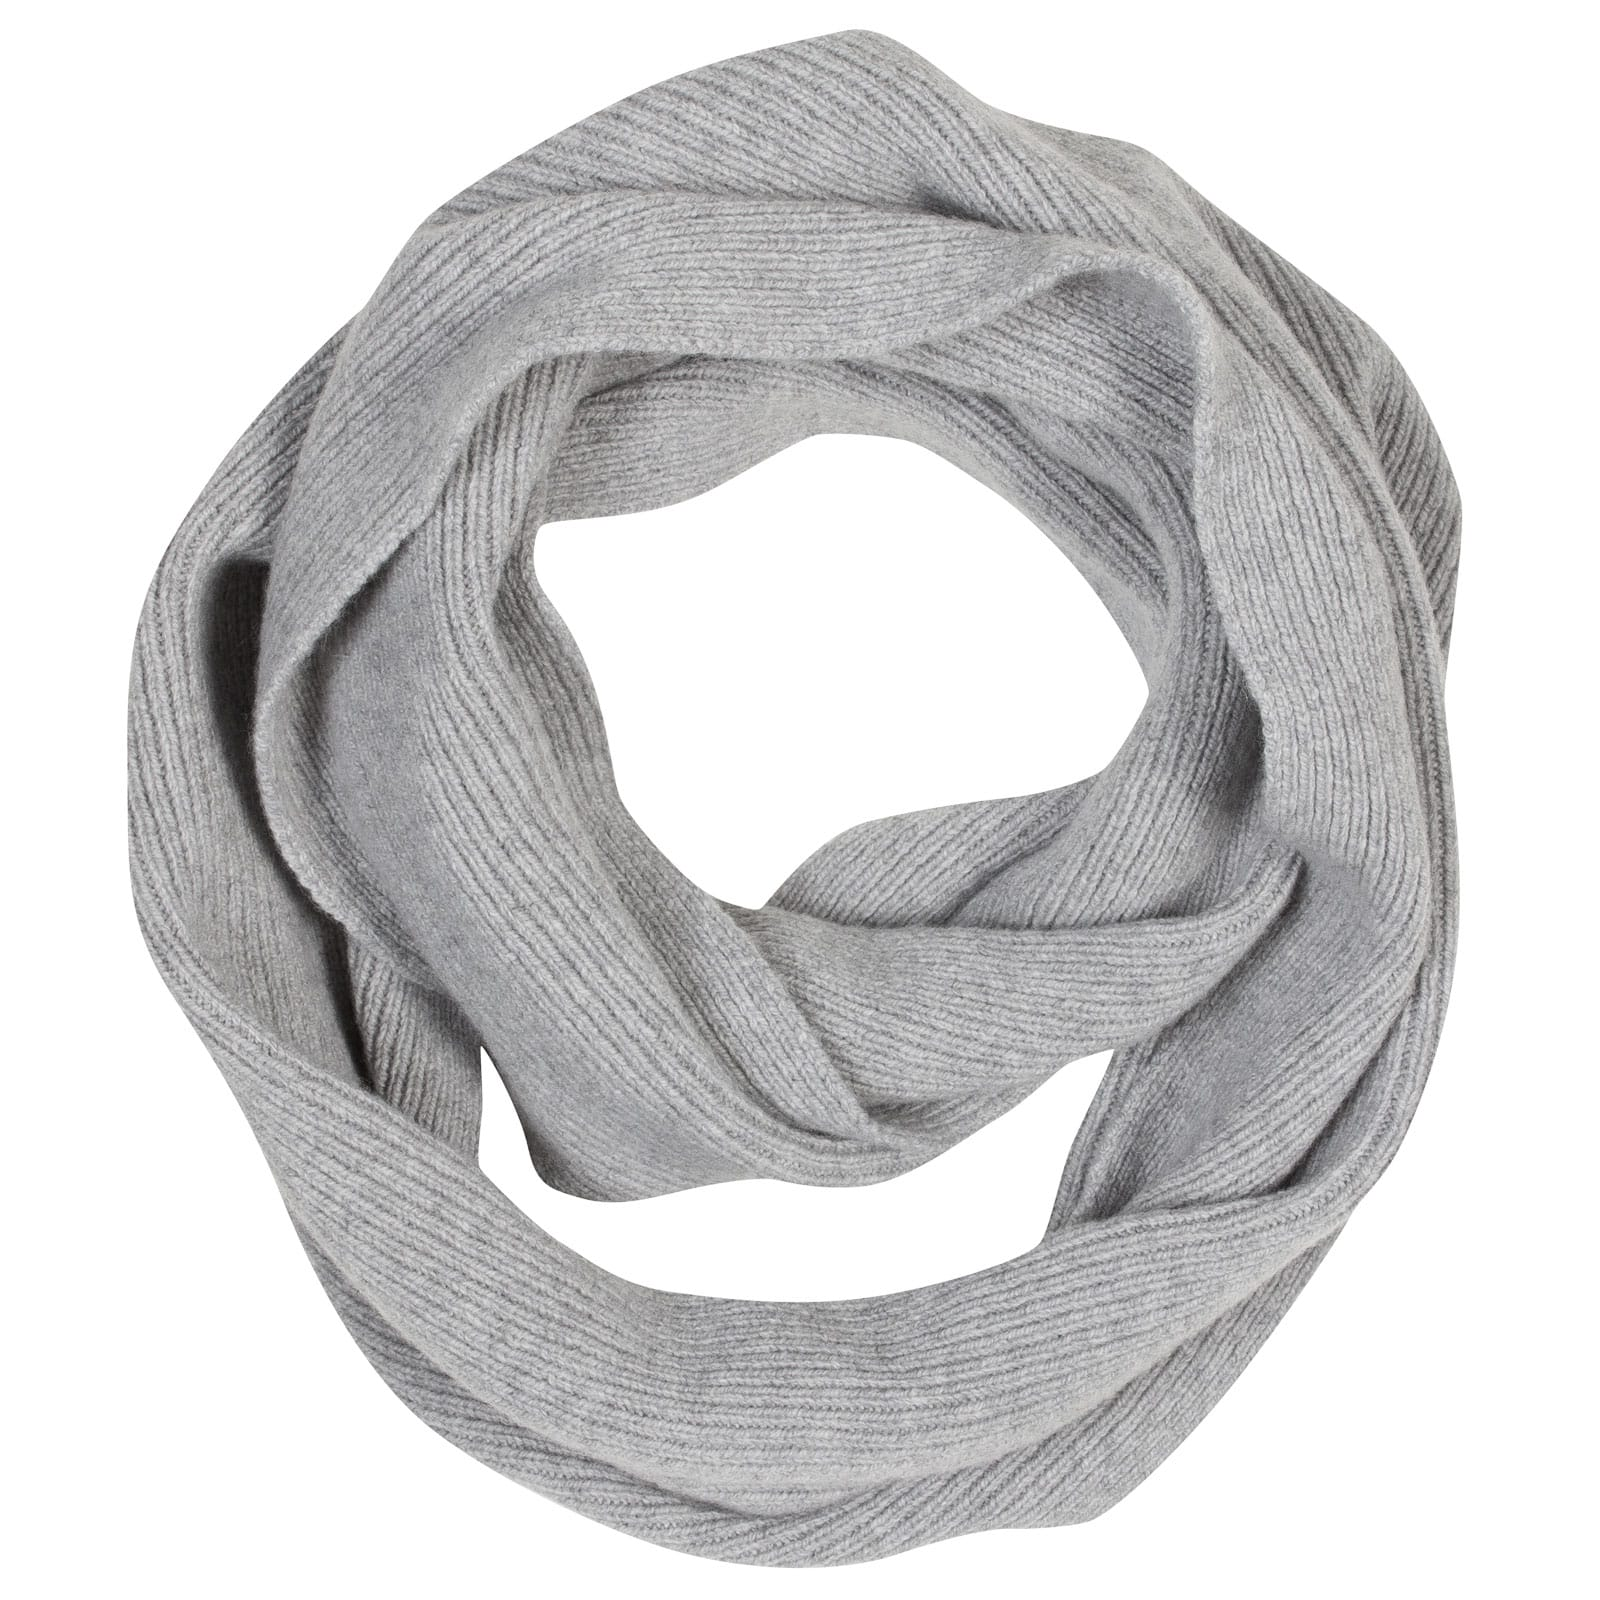 John Smedley solar Wool and Cashmere Scarf in Silver-ONE